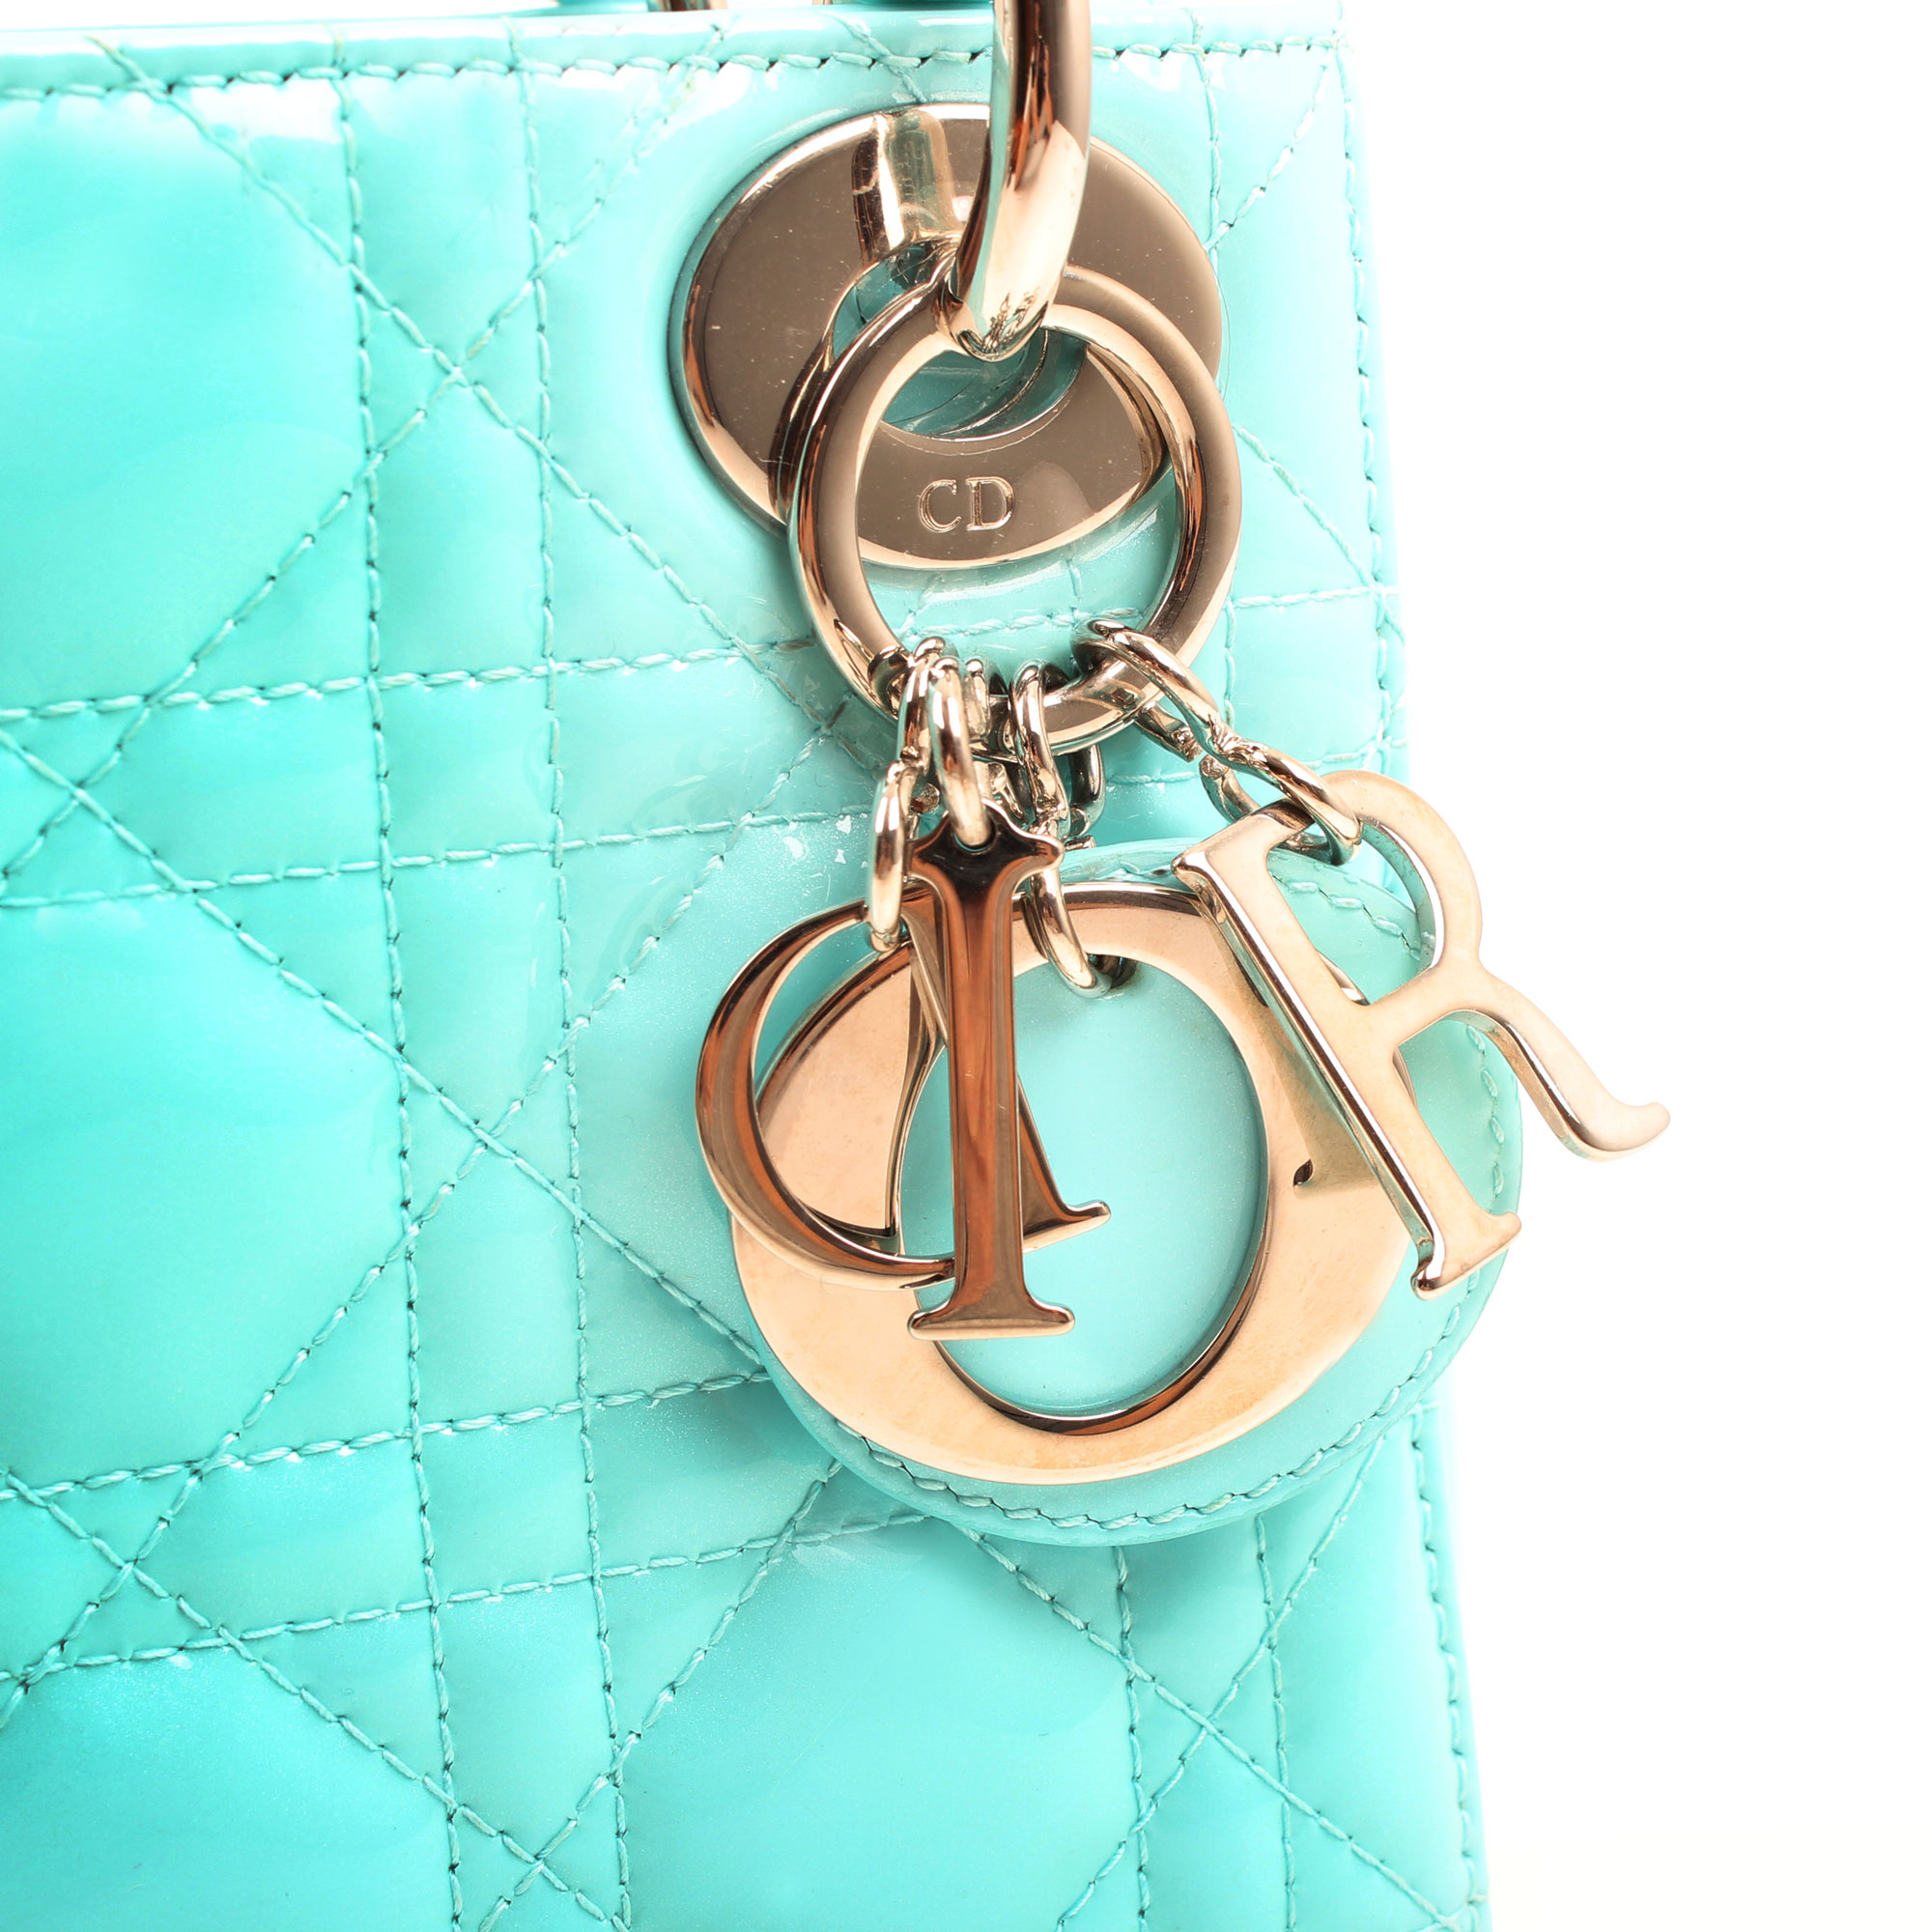 detail image of dior mini lady dior bag patent blue leather